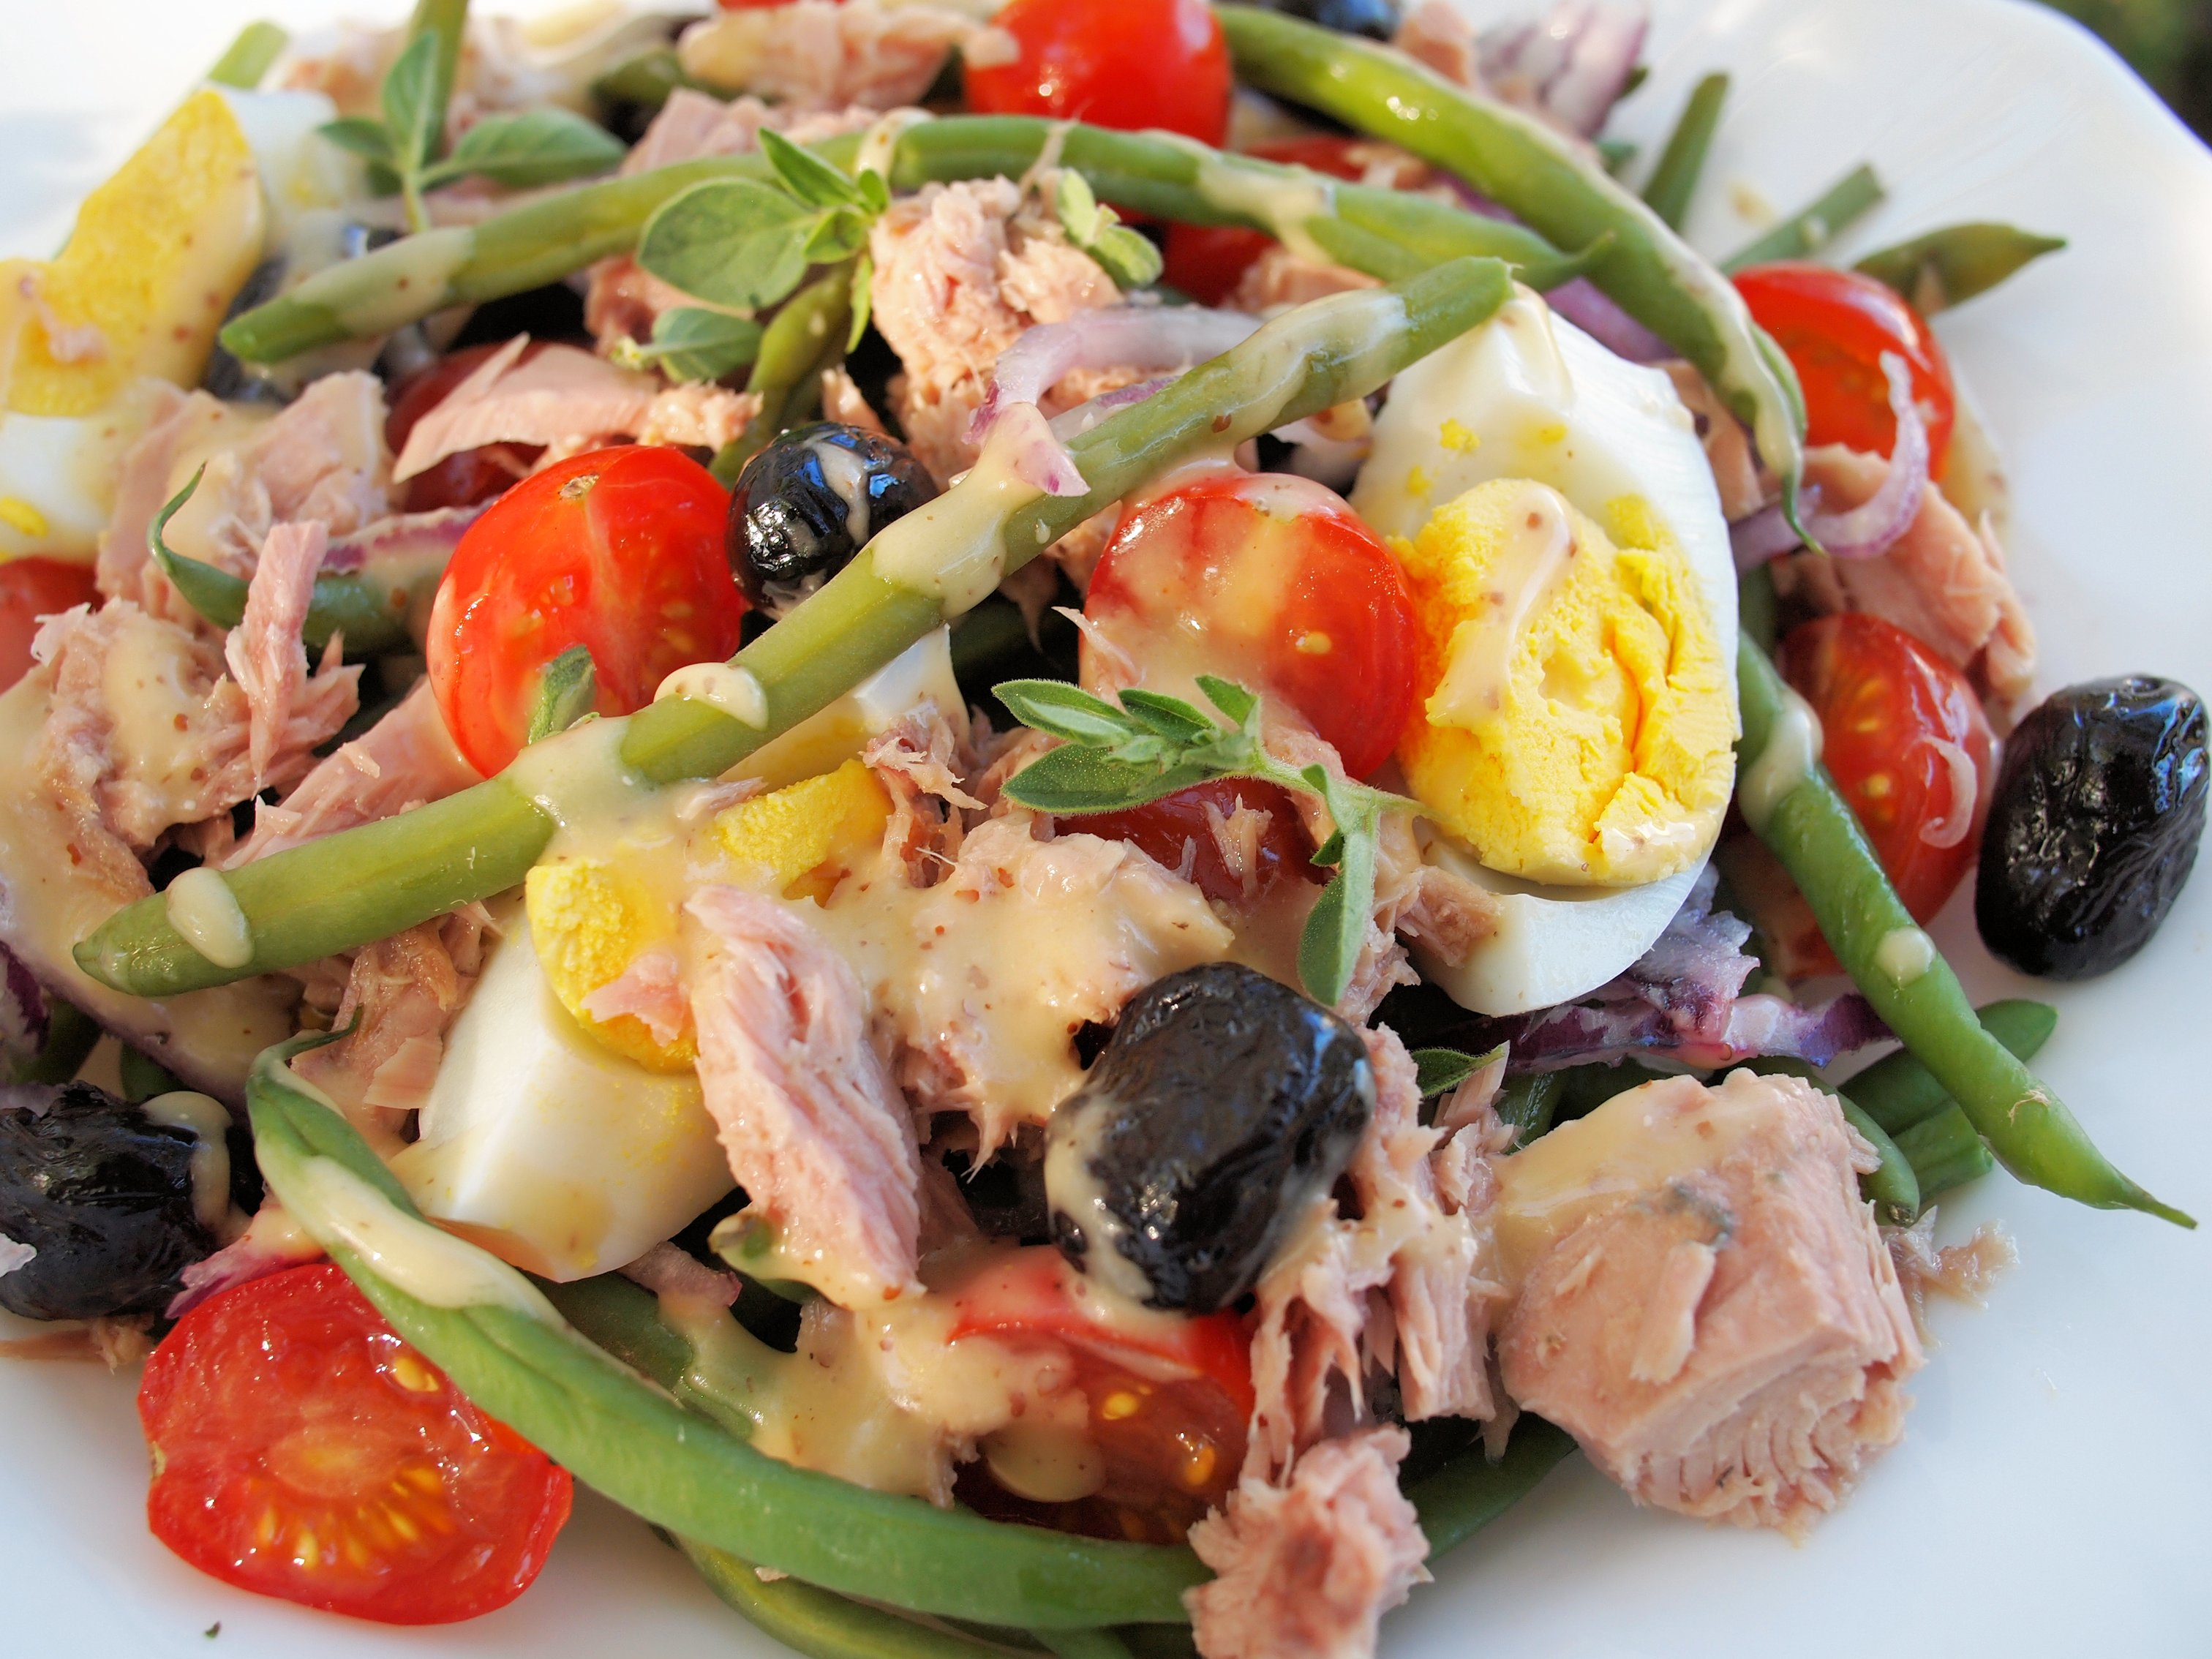 Salad Niçoise - Lavender and Lovage